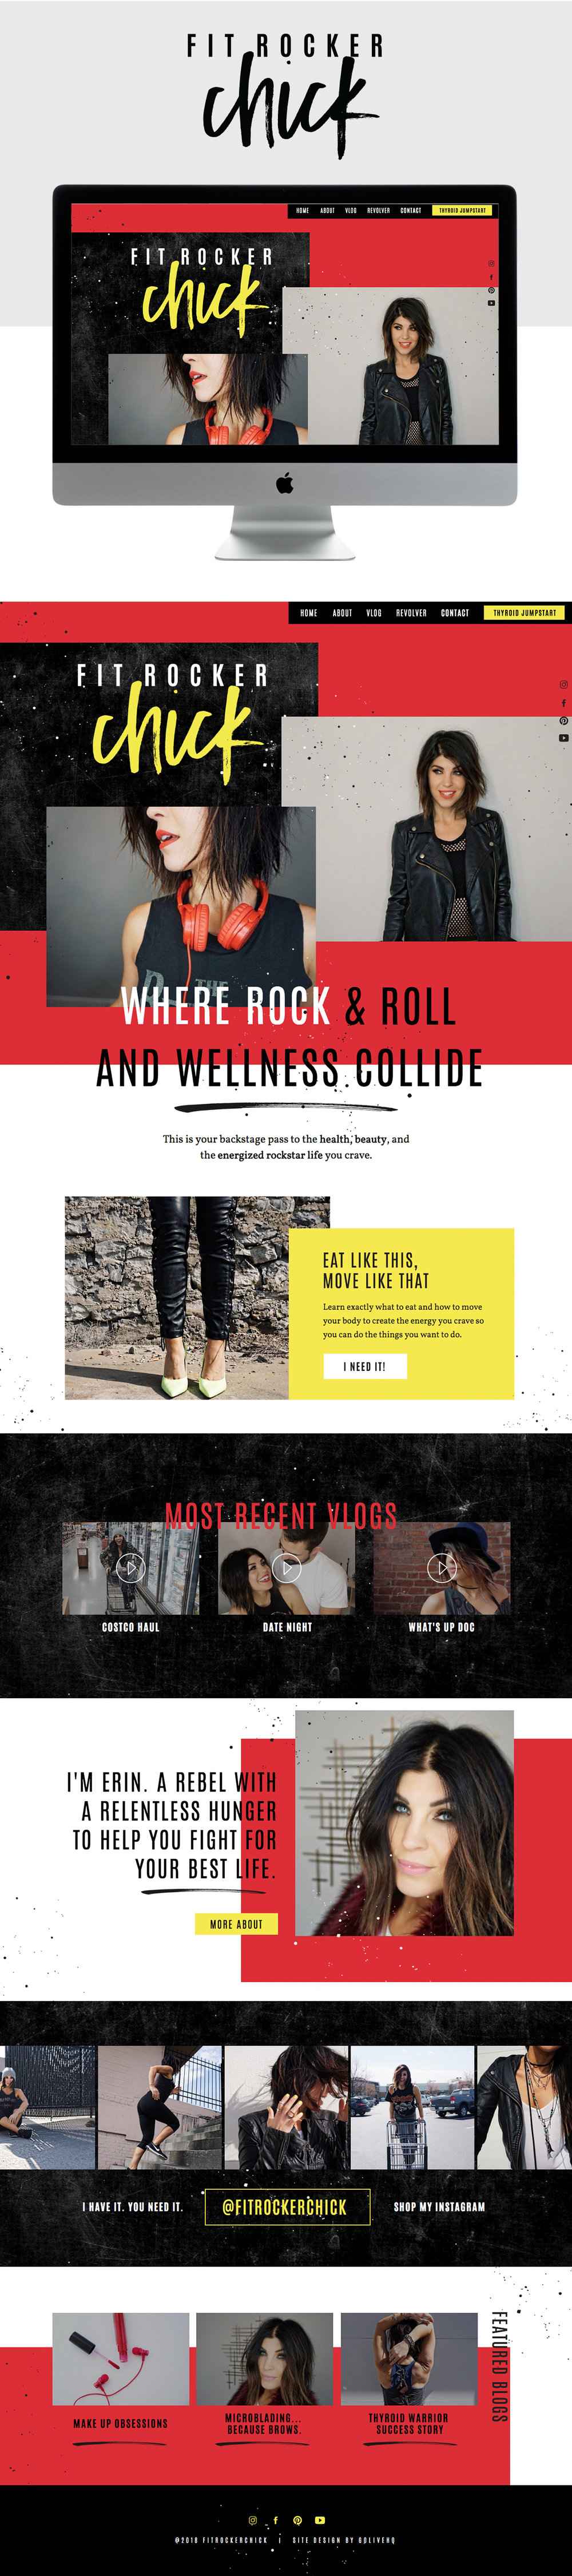 Bold, Modern Website Design for Health and Wellness Blog | Design by Go Live HQ